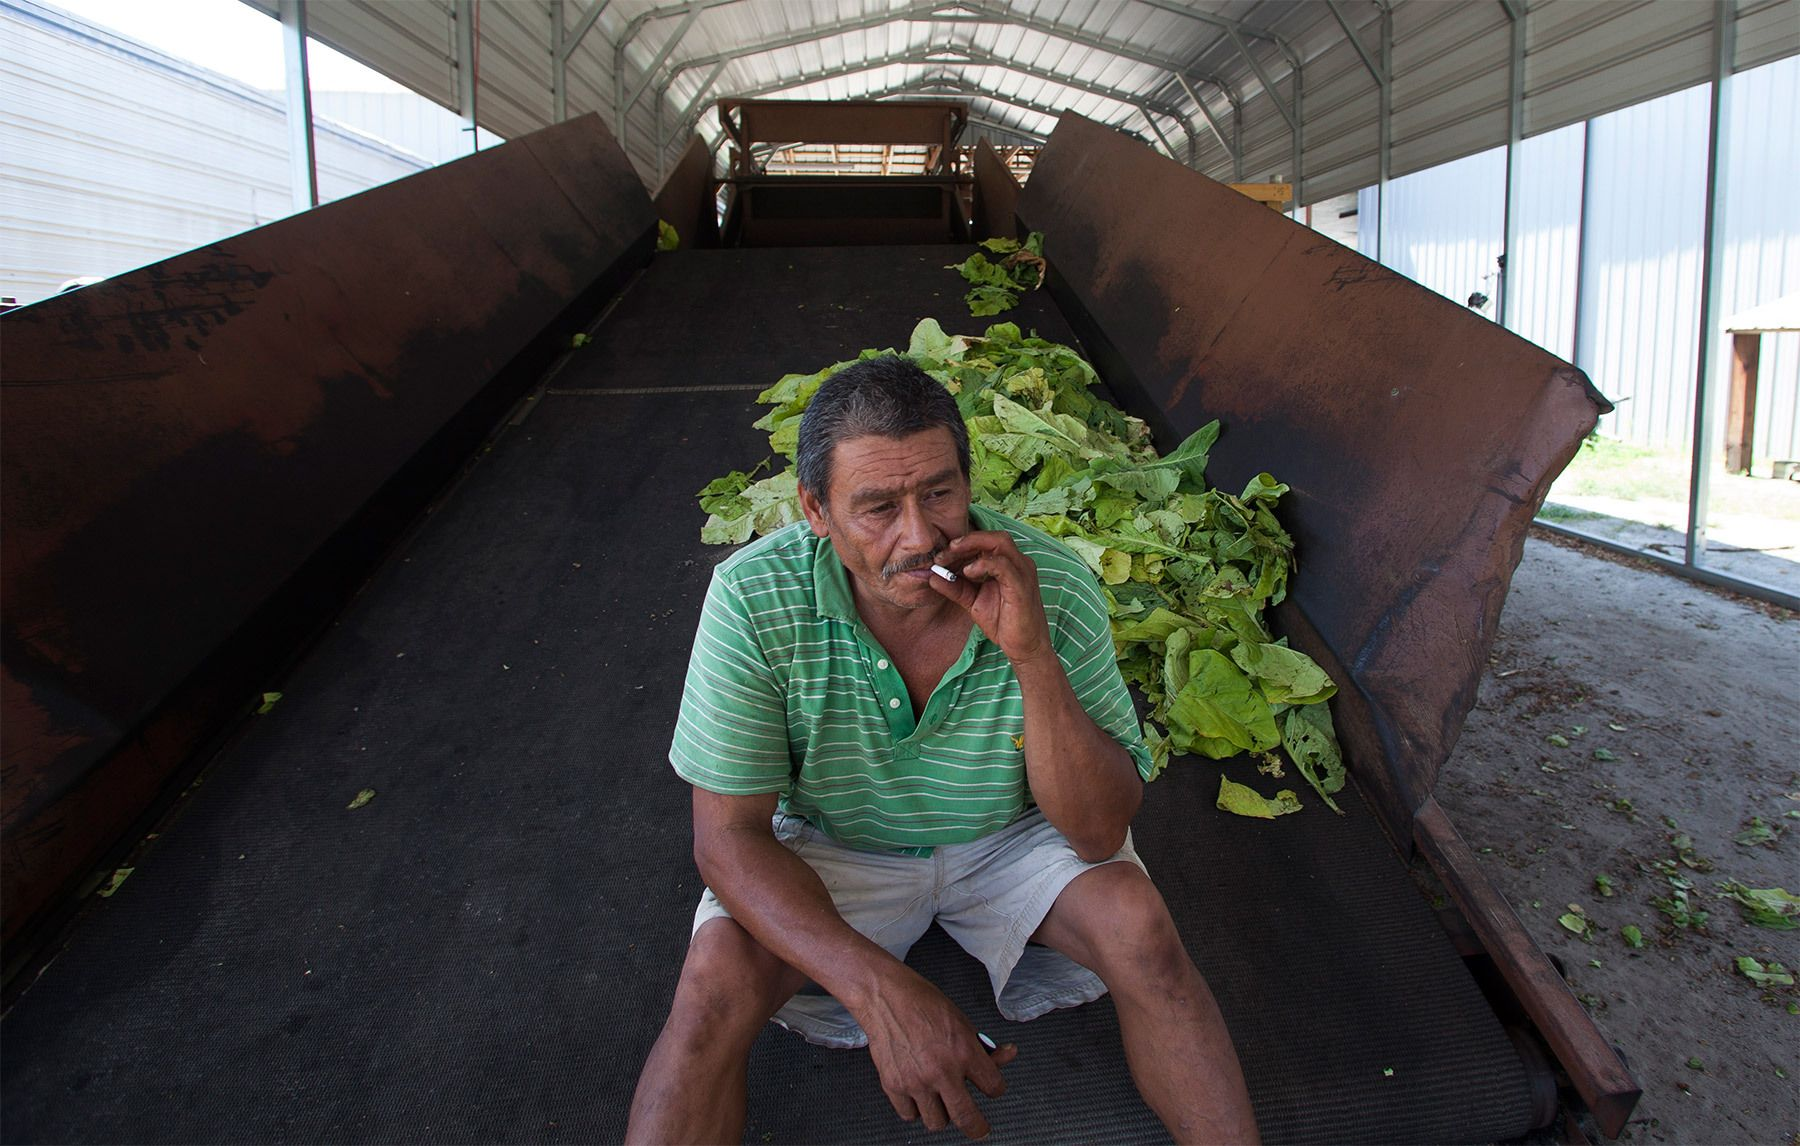 Farm hand Manuel Lopes takes a smoke break at Shelly Farms in the Pleasant View community of Horry County, South Carolina July 26, 2013. The traditional tobacco harvest requires many labor intensive hours to bring the crop to market, especially with the flue-cured variety prominent in the southern United States. With the growing health concerns with smoking in the US, most farmers use market cooperatives to sell their crop to the growing markets in China.      Picture taken on July 26, 2013.   REUTERS/Randall Hill (UNITED STATES)